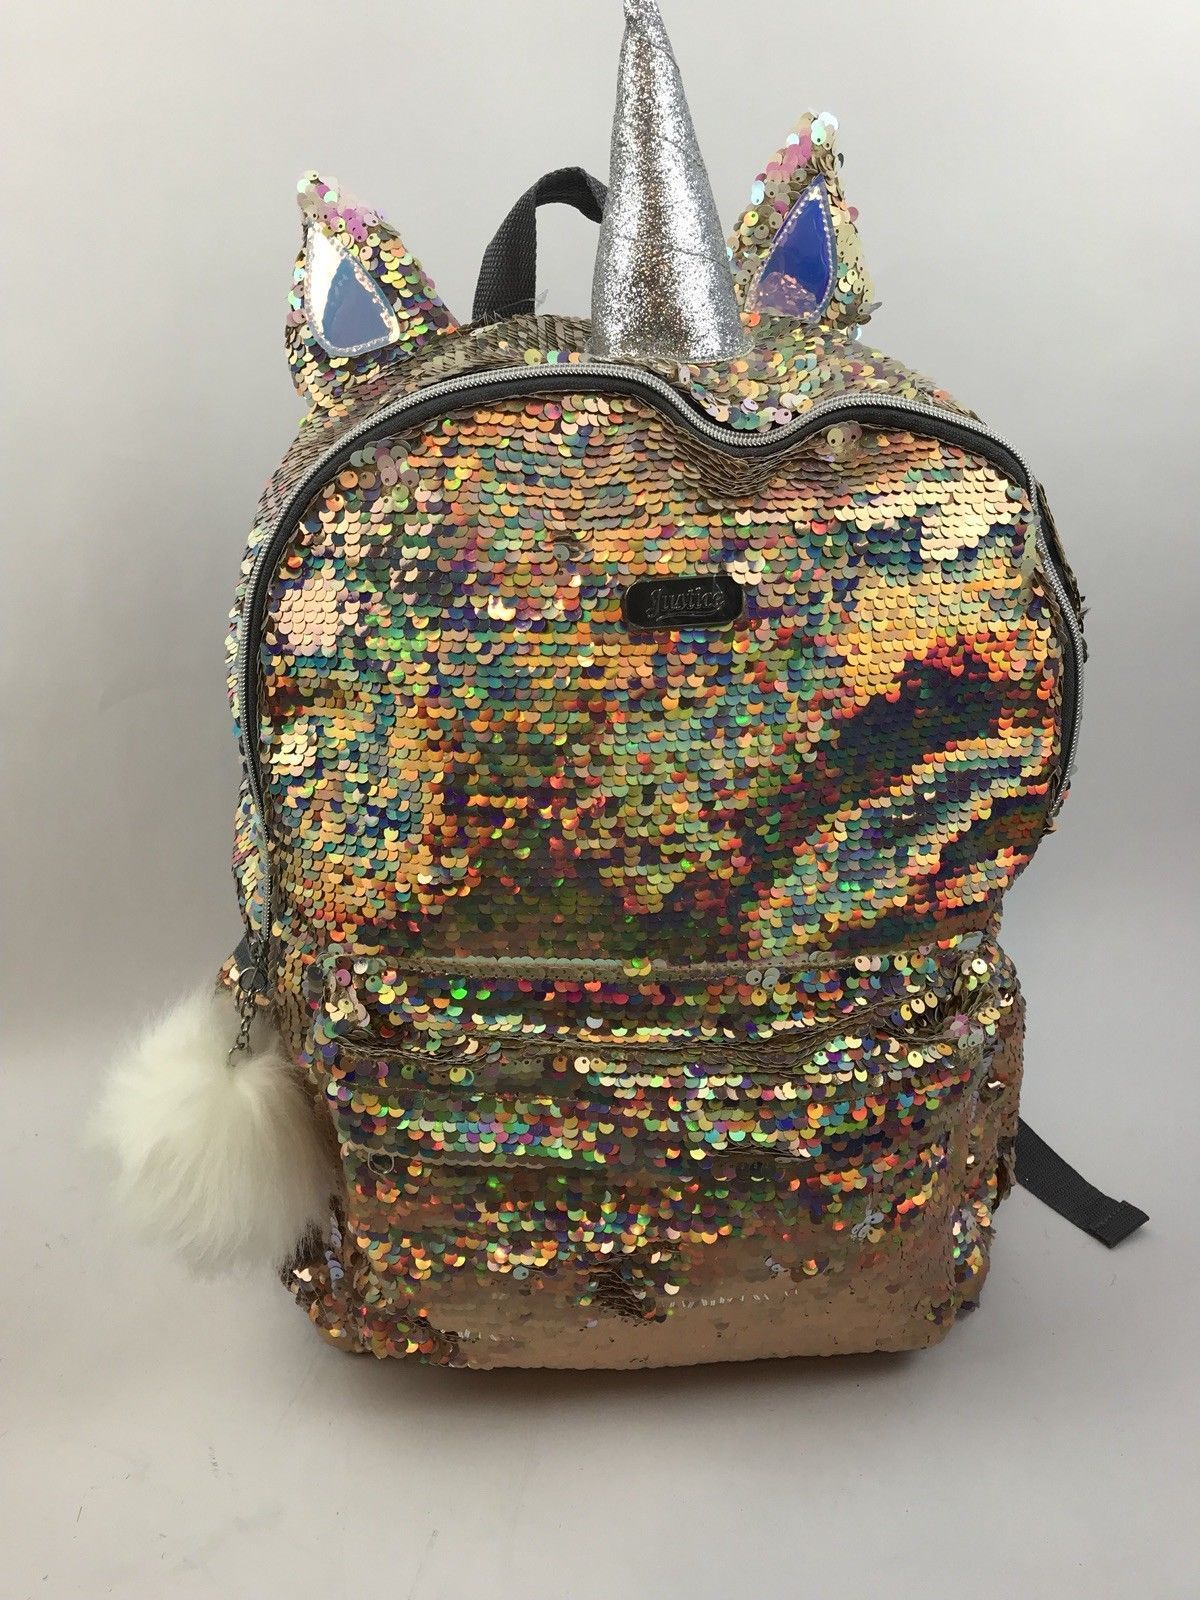 cefb9030c9f Justice Girls Unicorn Gold Flip Sequin Backpack NEW QLT1 G18 Sold ...